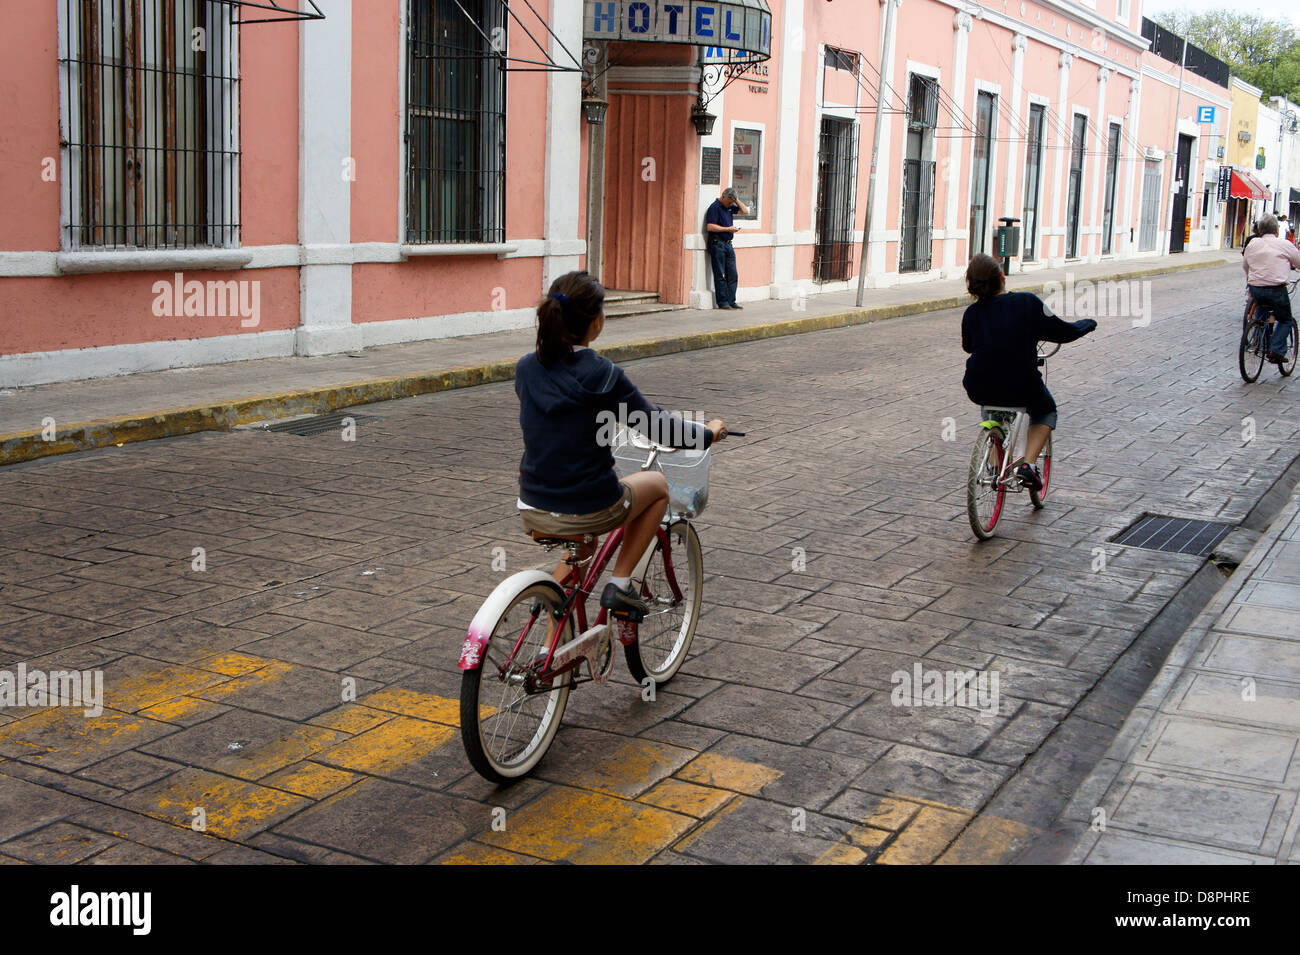 People riding bicycles during Sunday bici ruta on Calle 60 in Merida, Yucatan, Mexico - Stock Image